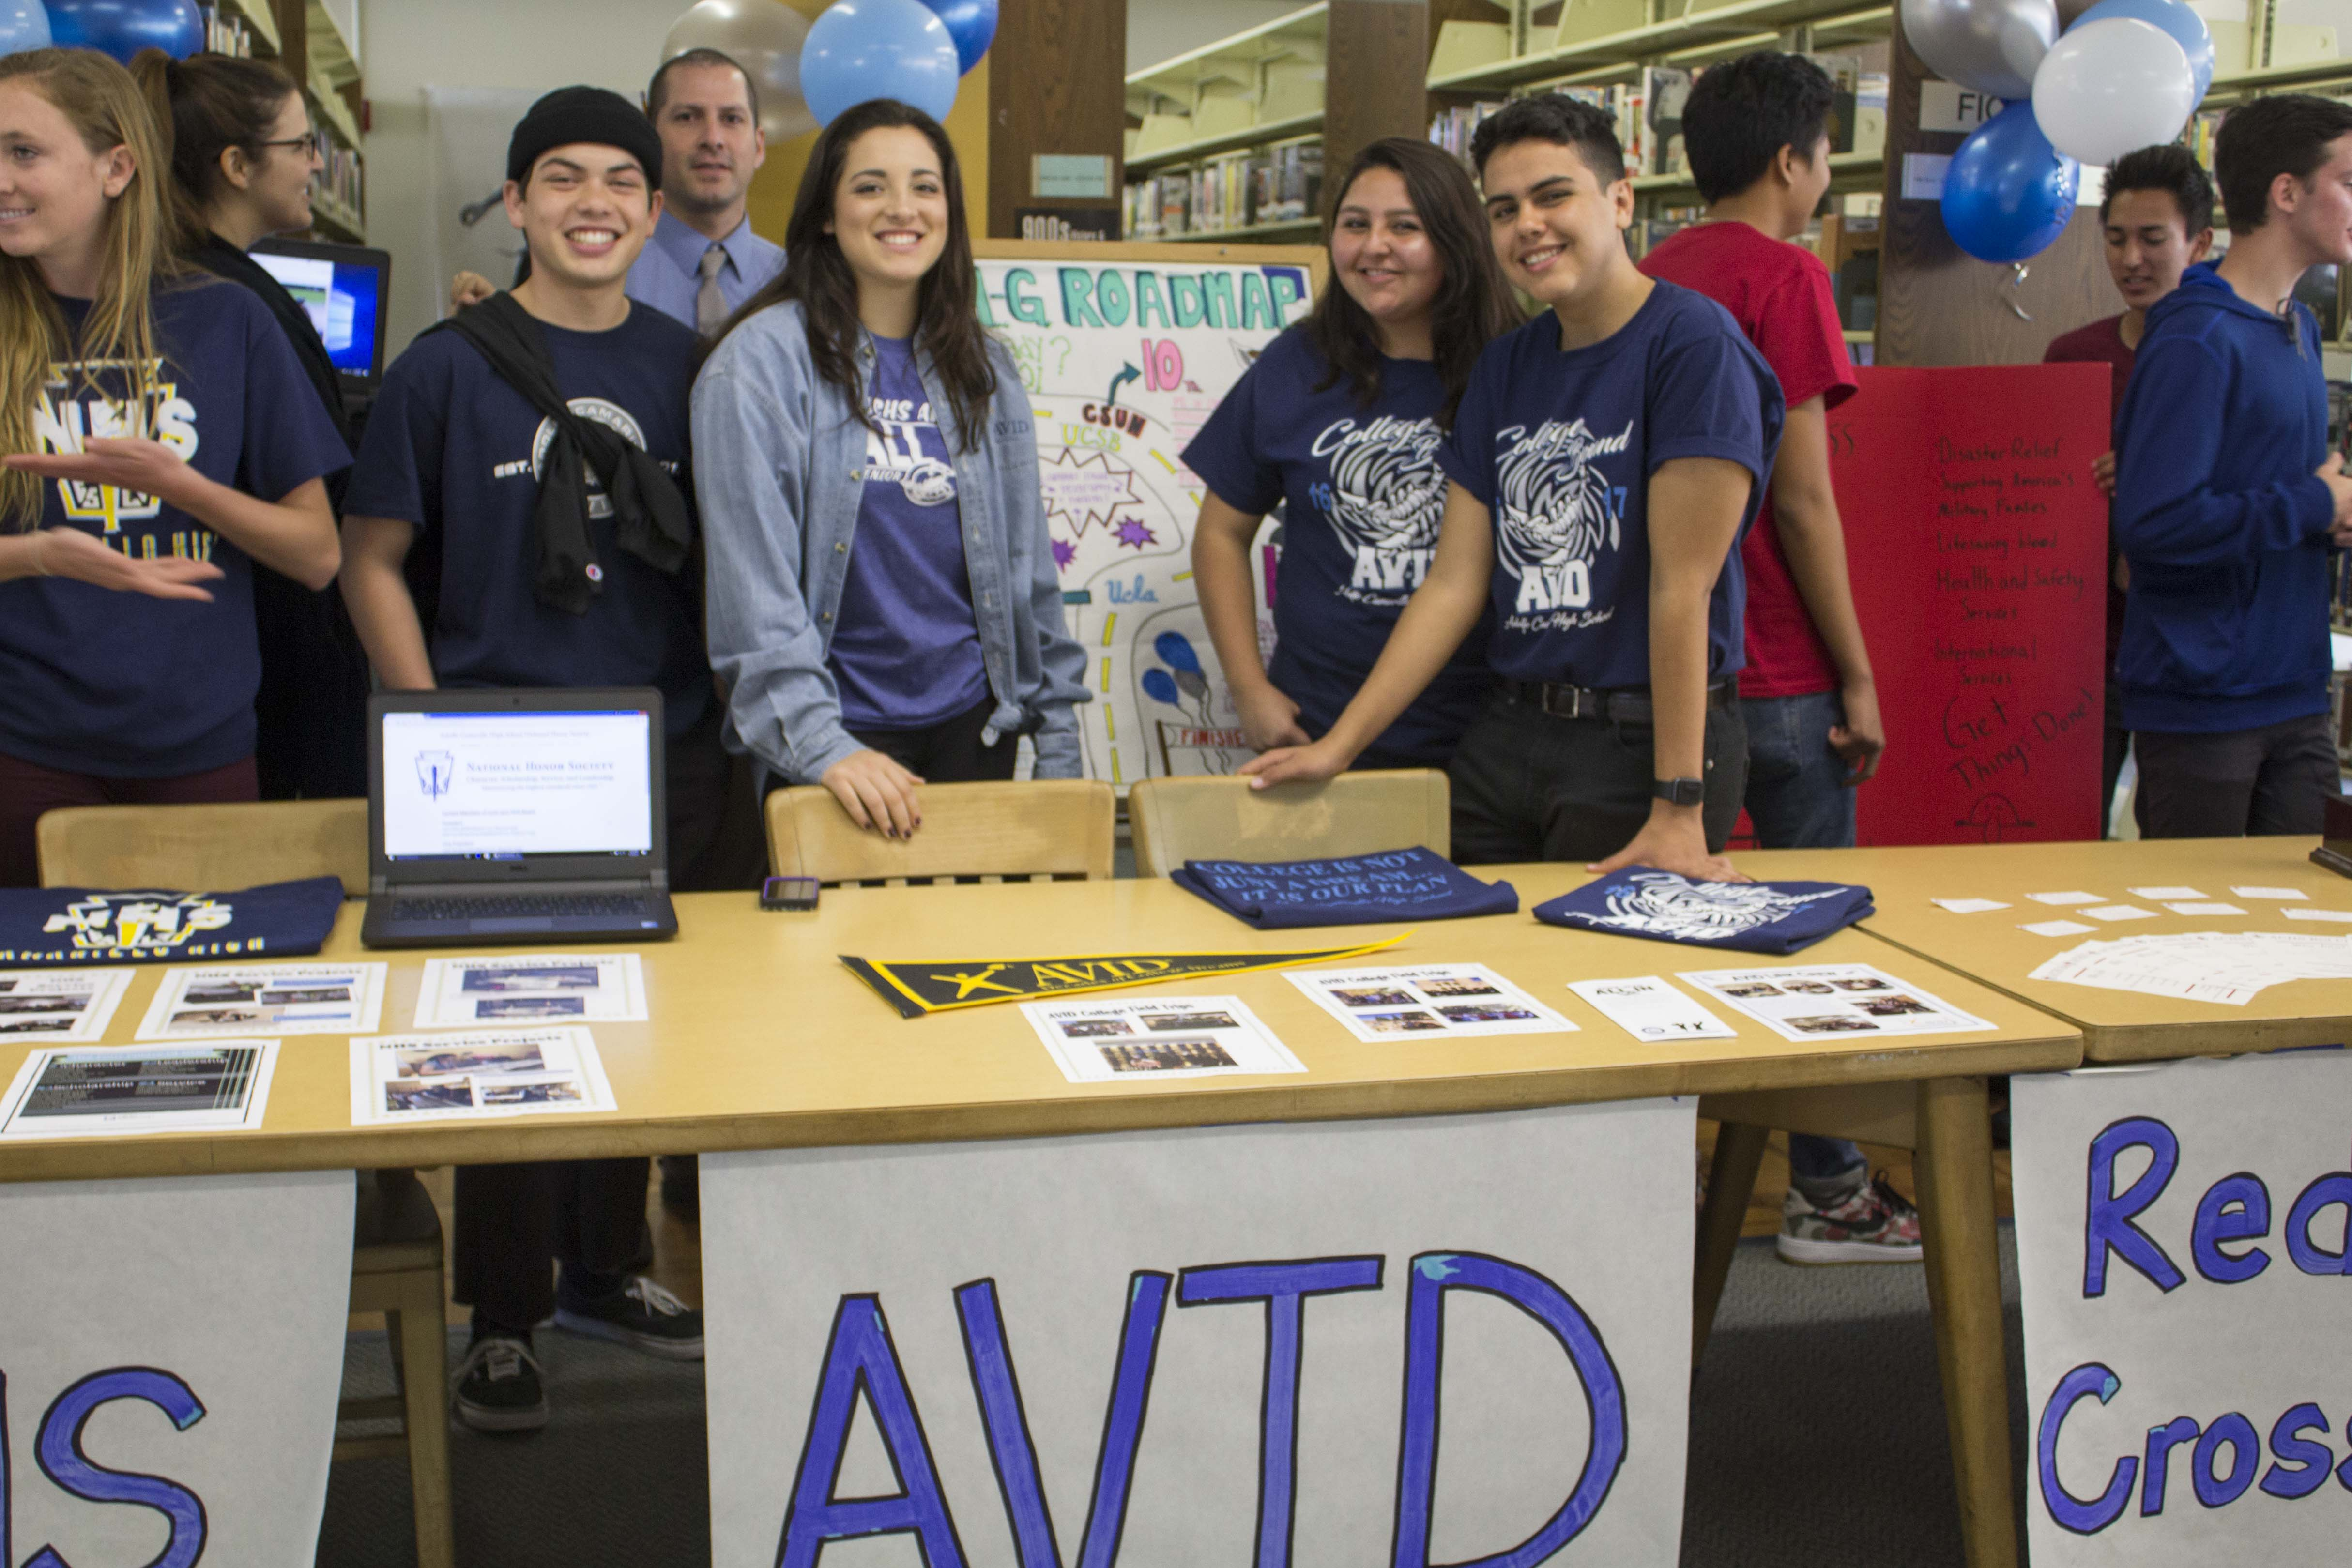 (left to right) Justin Cole, Mr. Richard Jaquez, Faith Chavez, Abby Urzua, and Pablo Martin (seniors) representing Advancement Via Individual Determination (Avid) striving for college readiness.